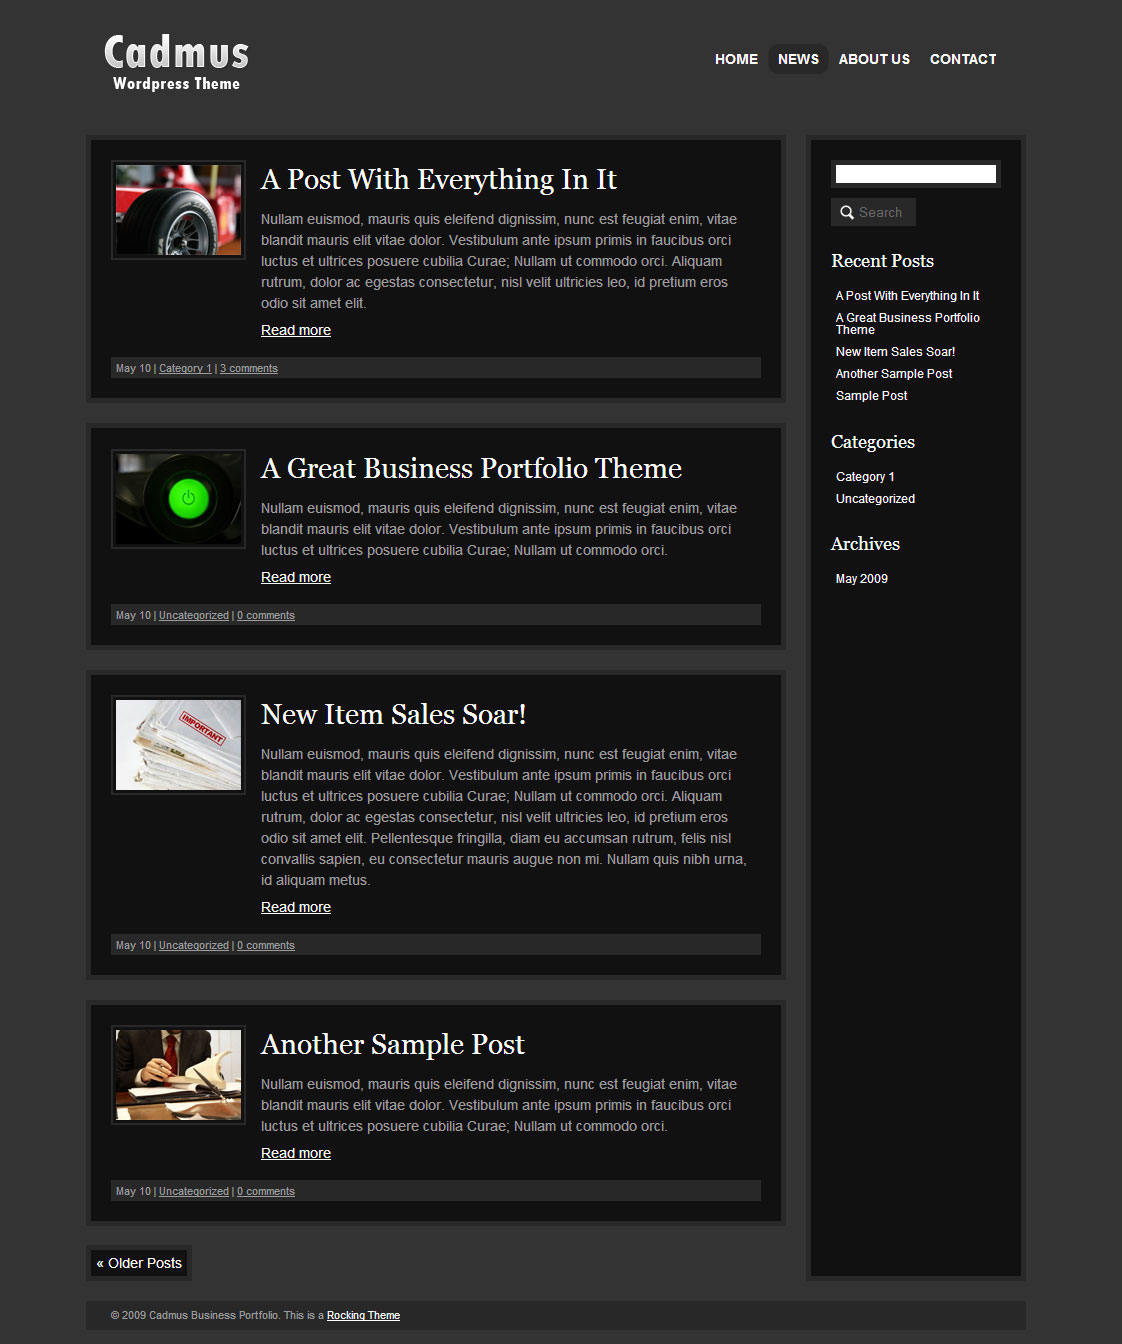 Cadmus Business Portfolio - 6 in 1 WordPress Theme - Cadmus Business Portfolio News / Blog Page